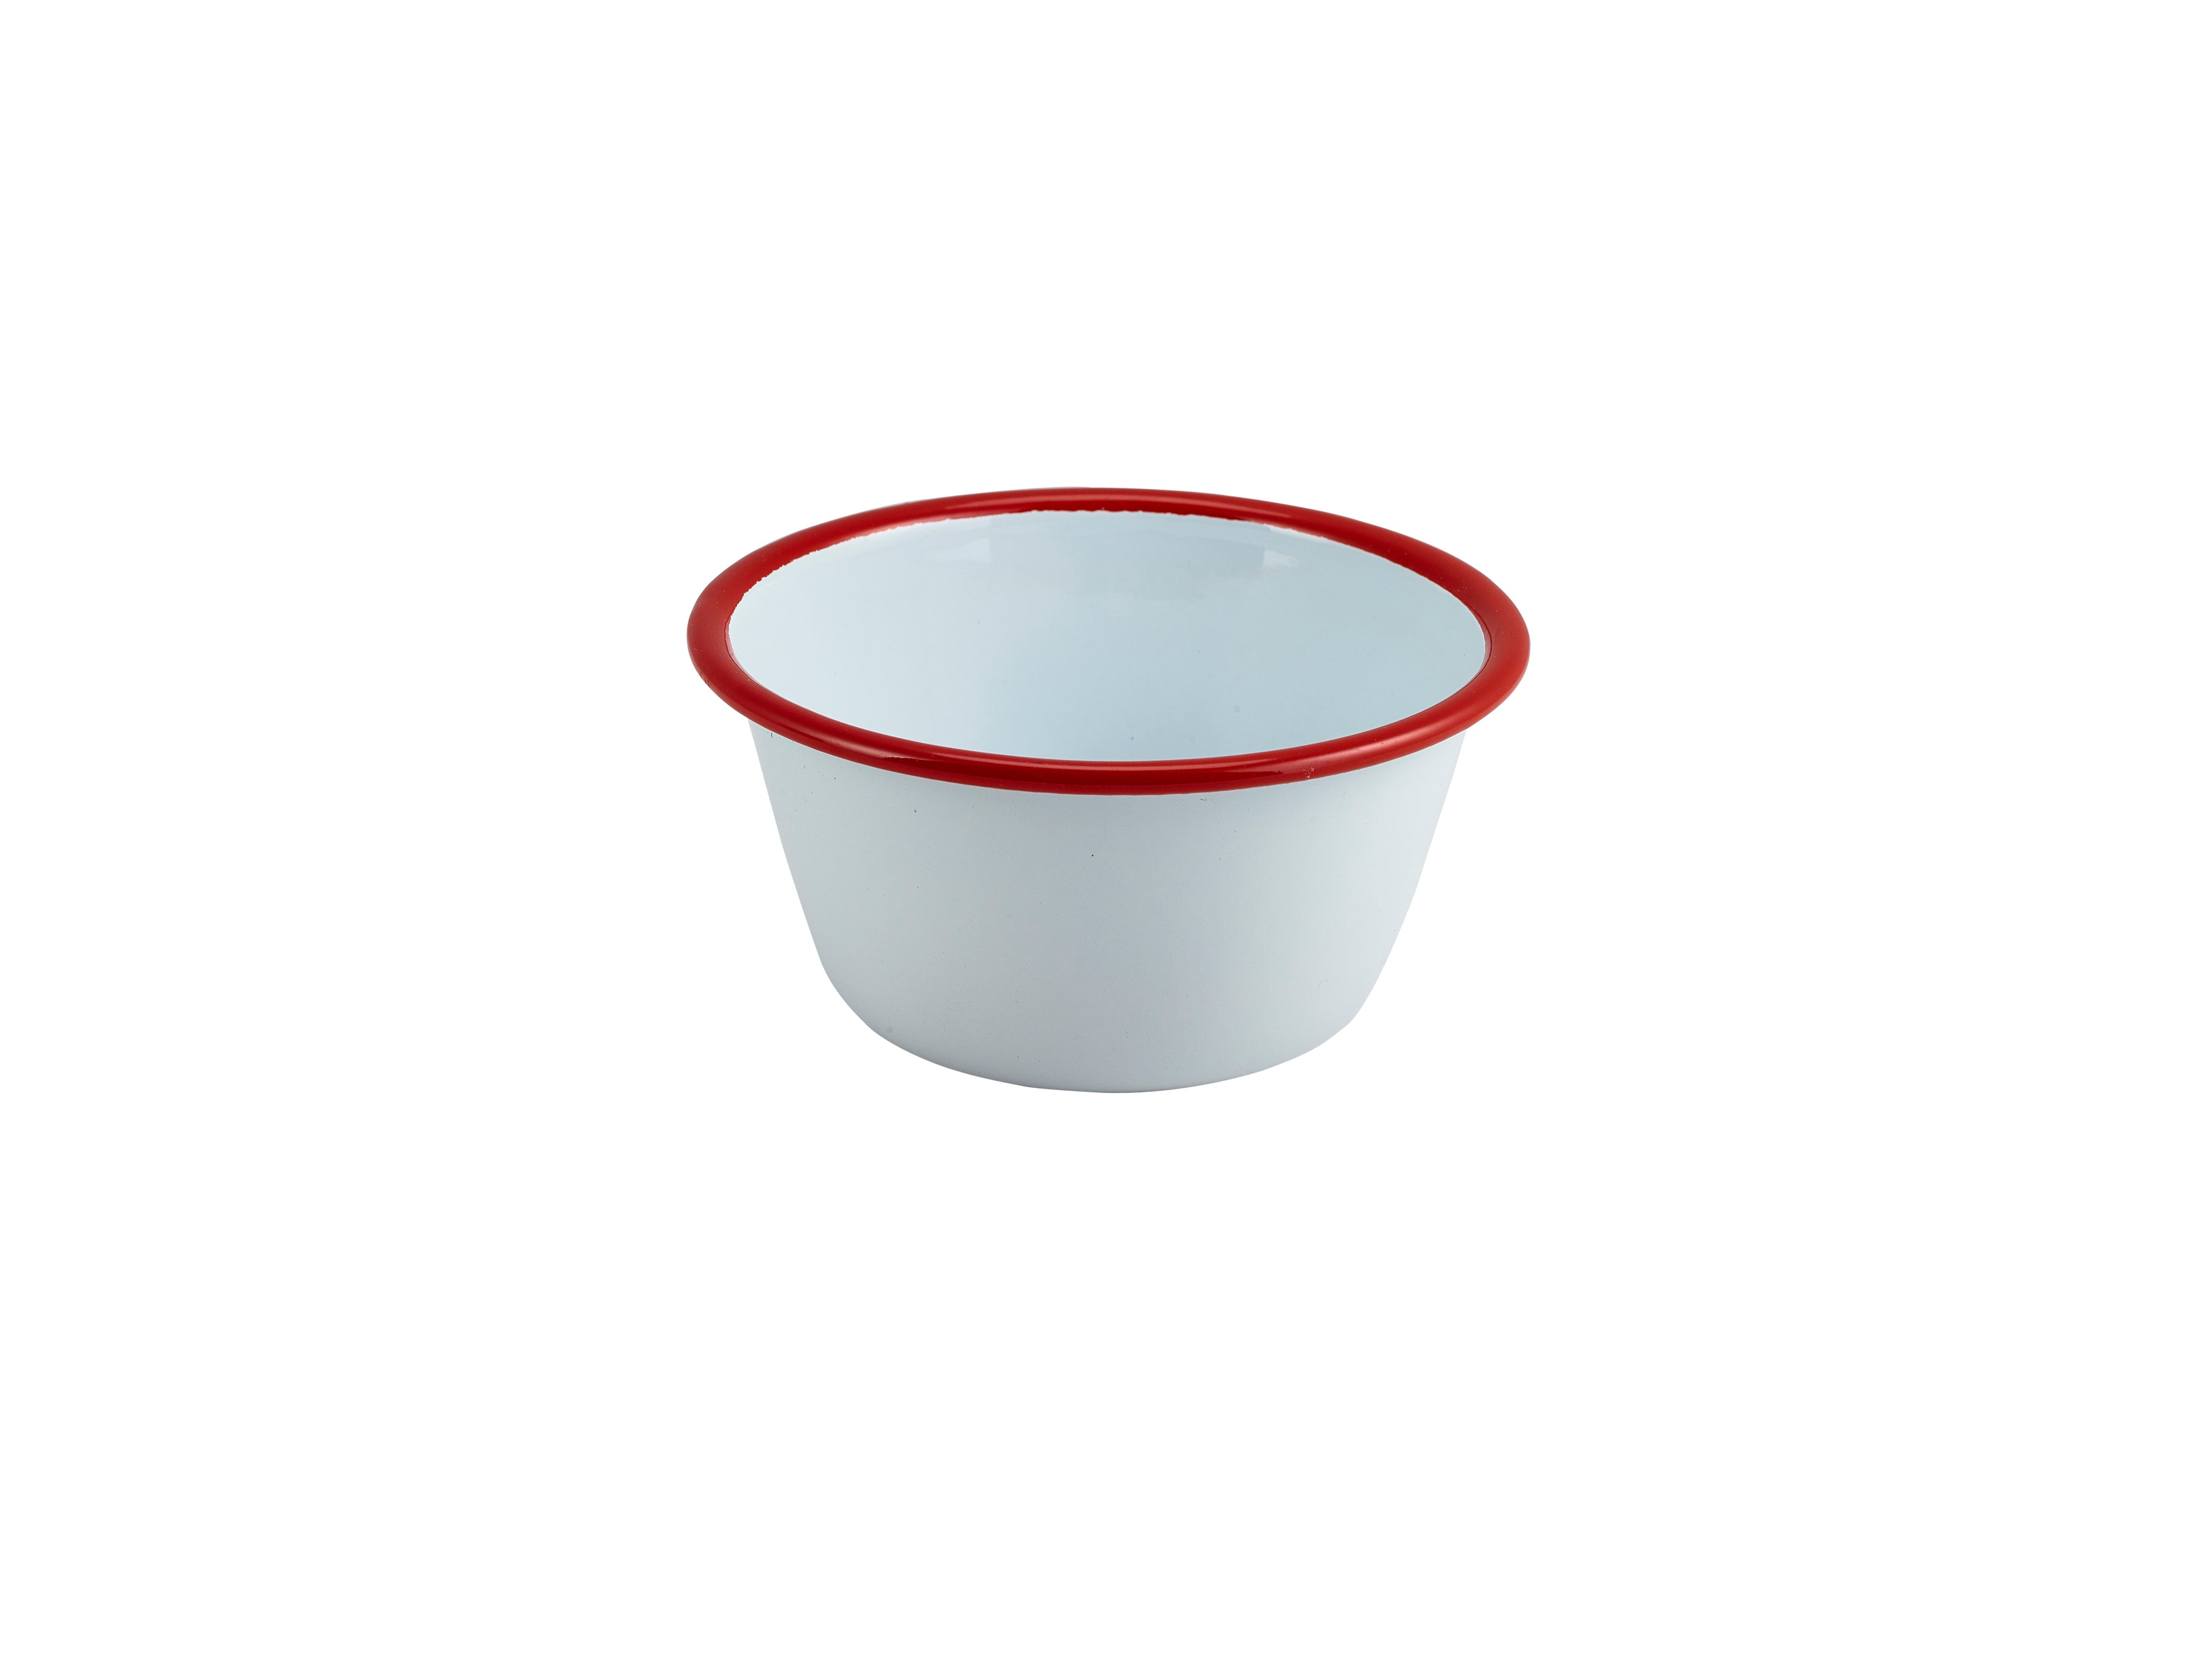 Enamel Round Deep Pie Dish White with Red Rim 12cm